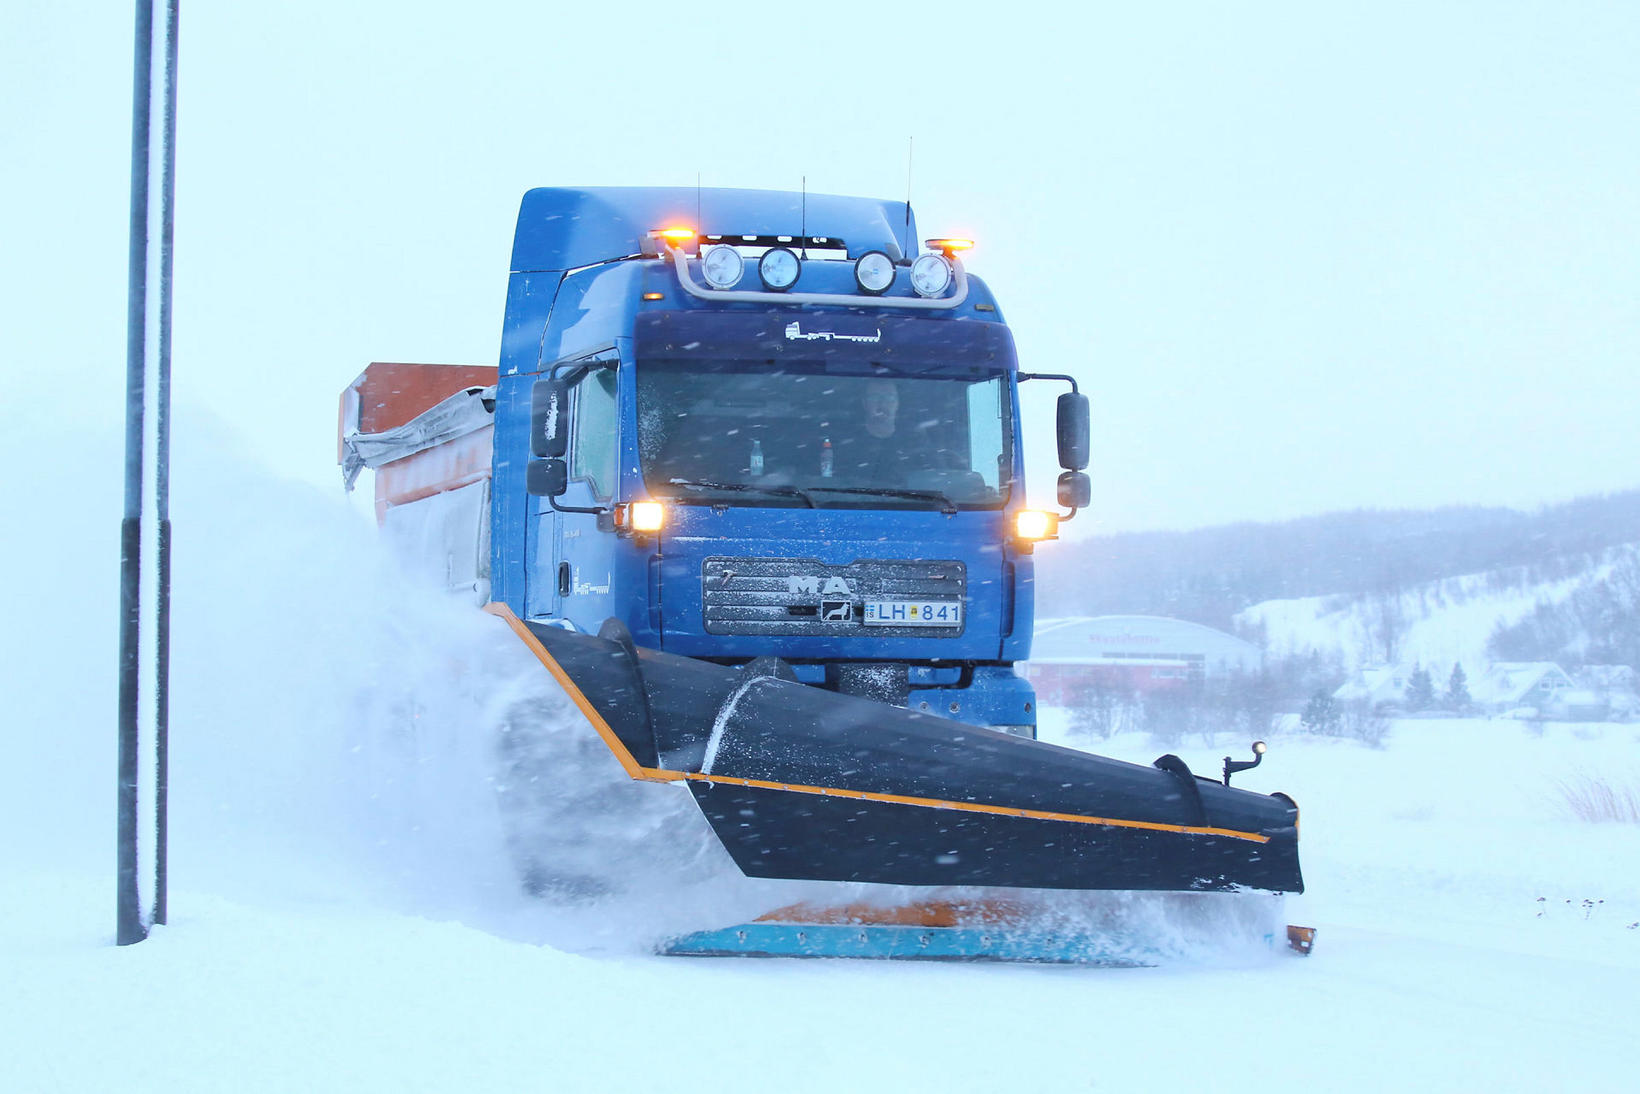 Snow removal in Akureyri on Friday.